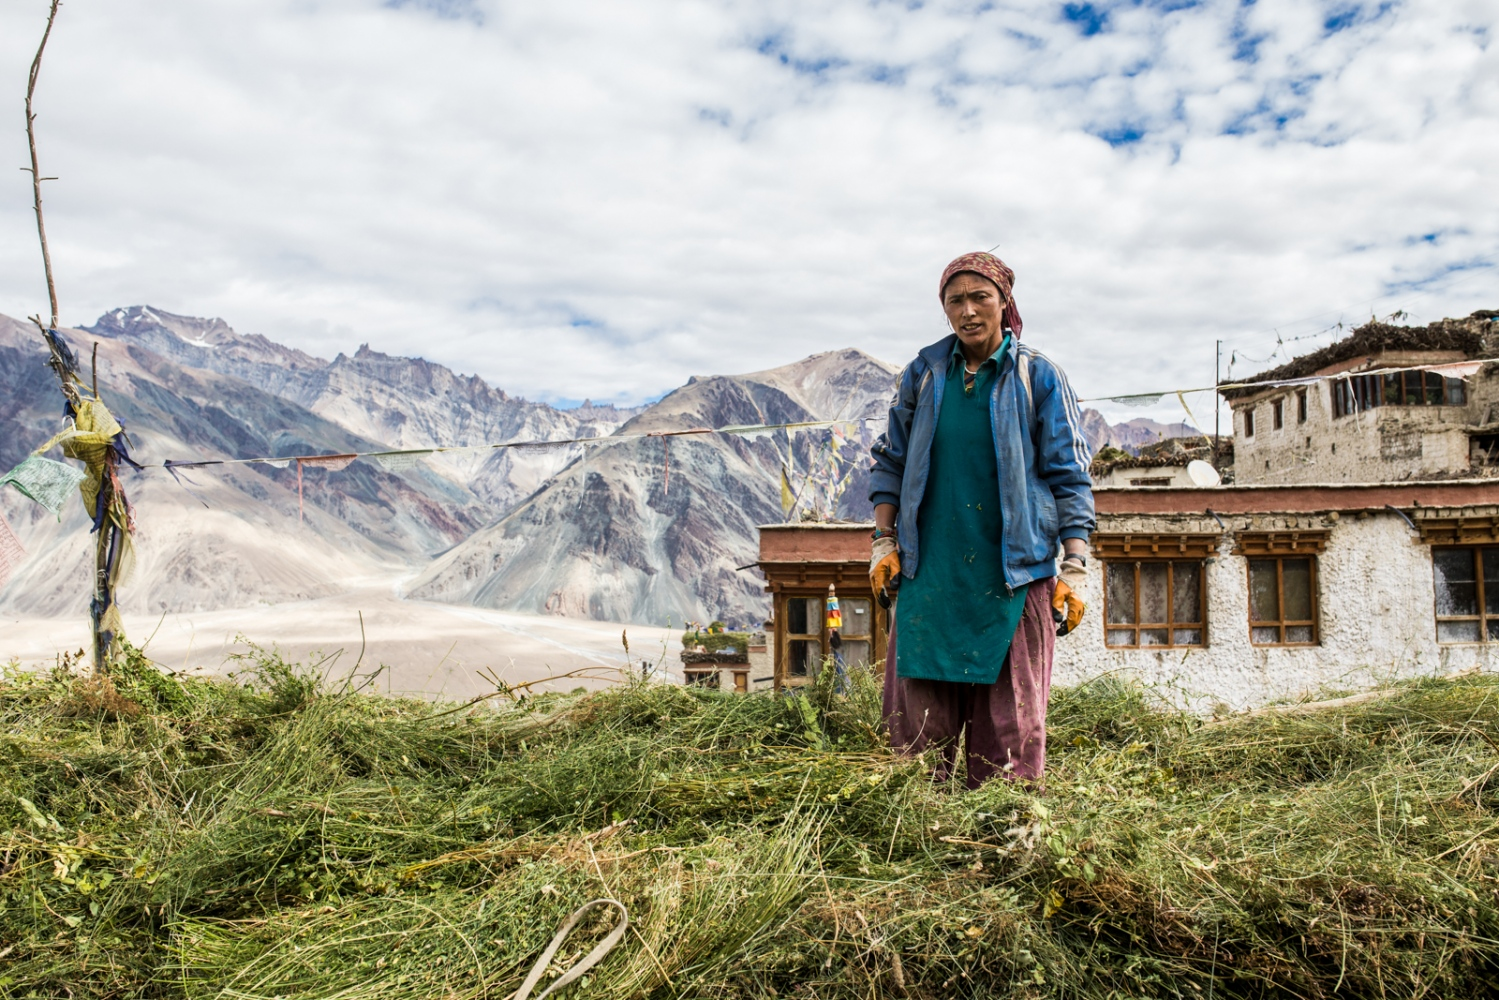 Tsewang Zangmo stands on her roof amongst harvested fodder crops for the livestock.